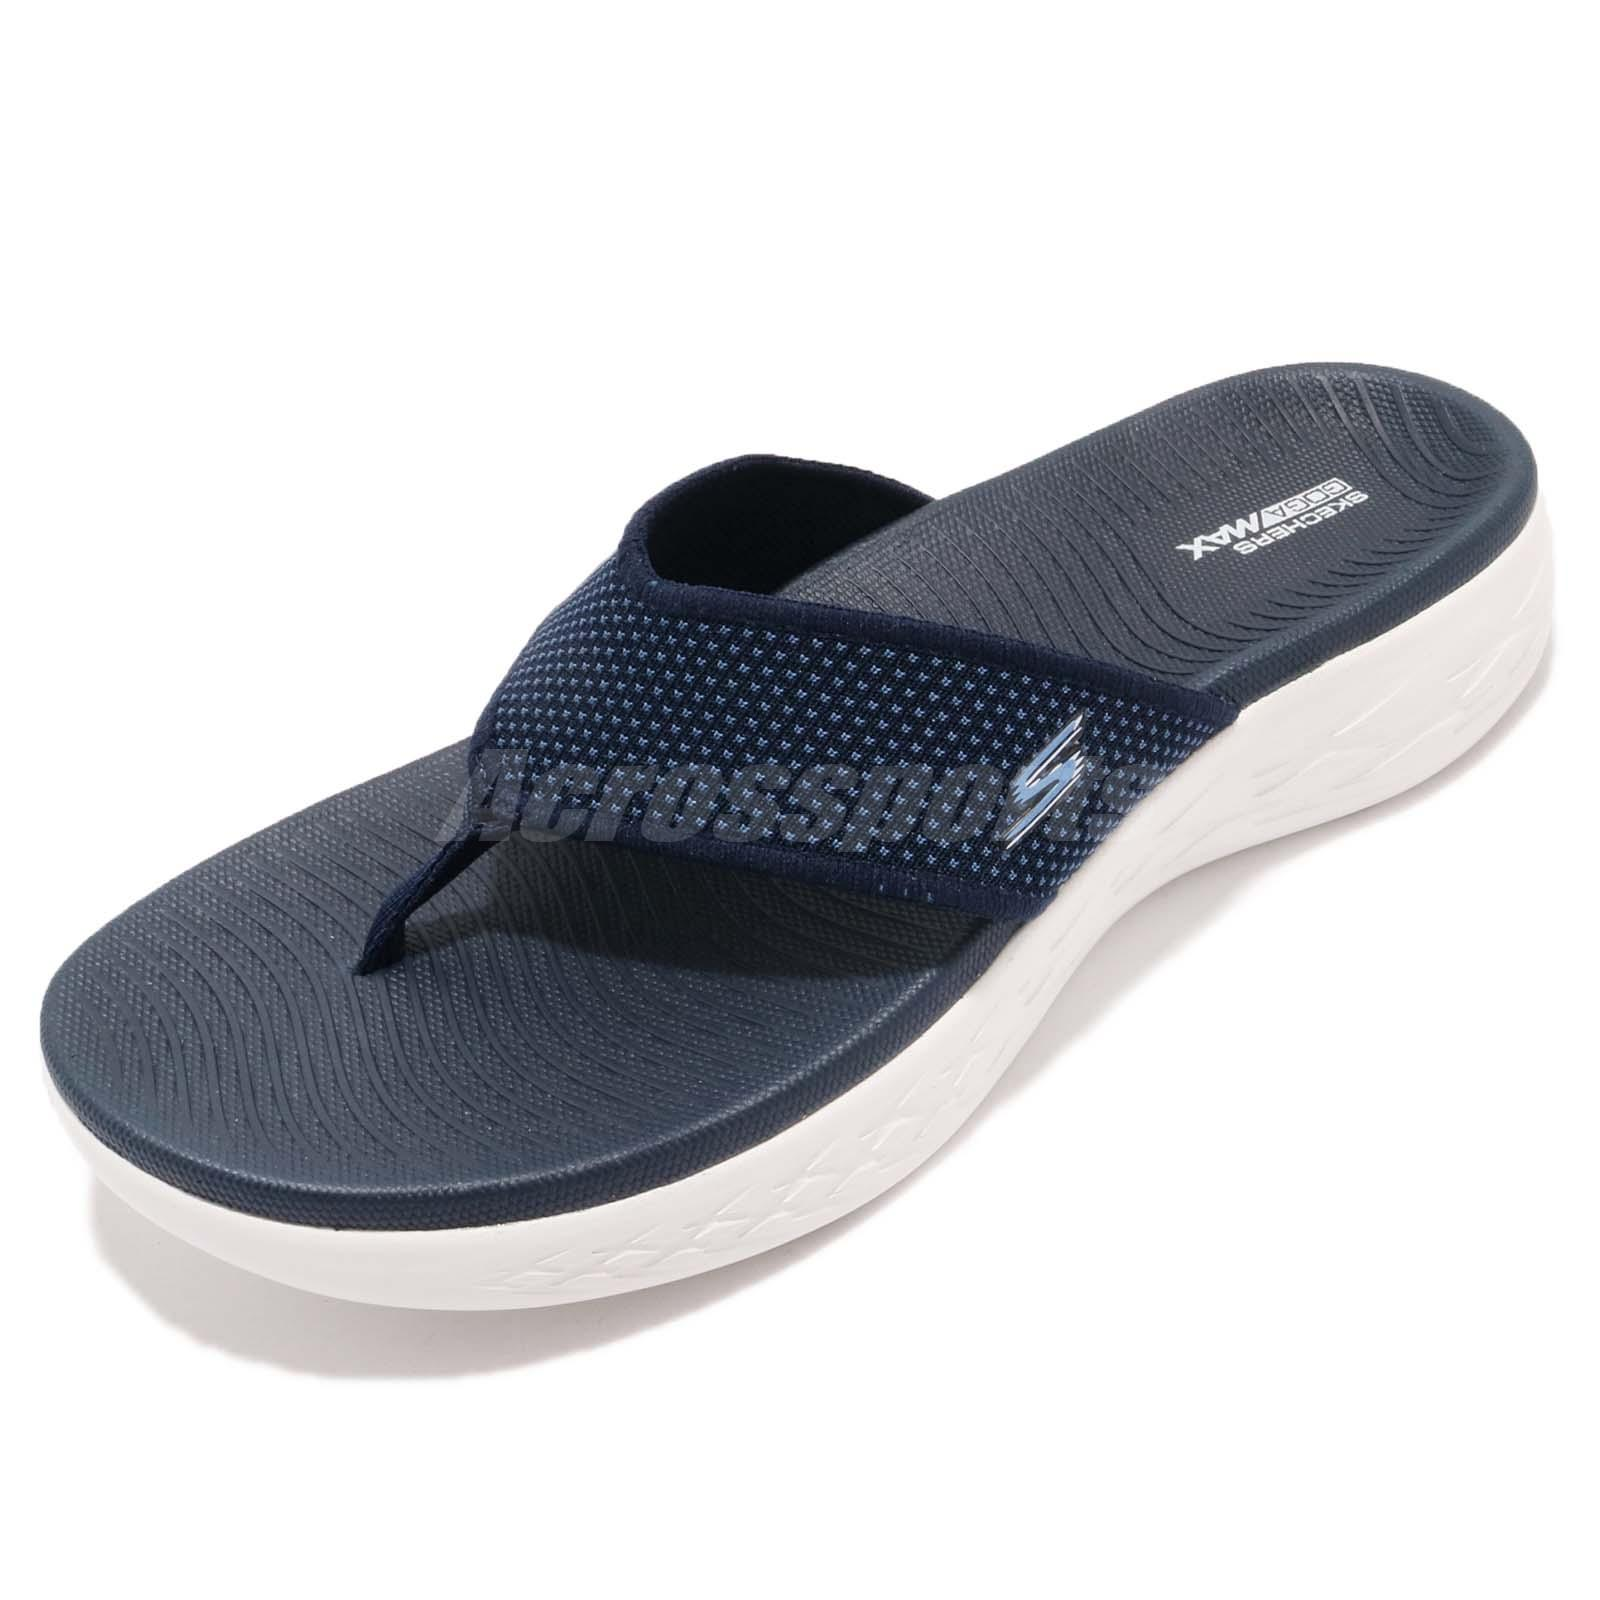 00746dbf0 Skechers On-The-Go 600 Goga Max Navy White Men Sandal Thong Flip-Flops  55350-NVY